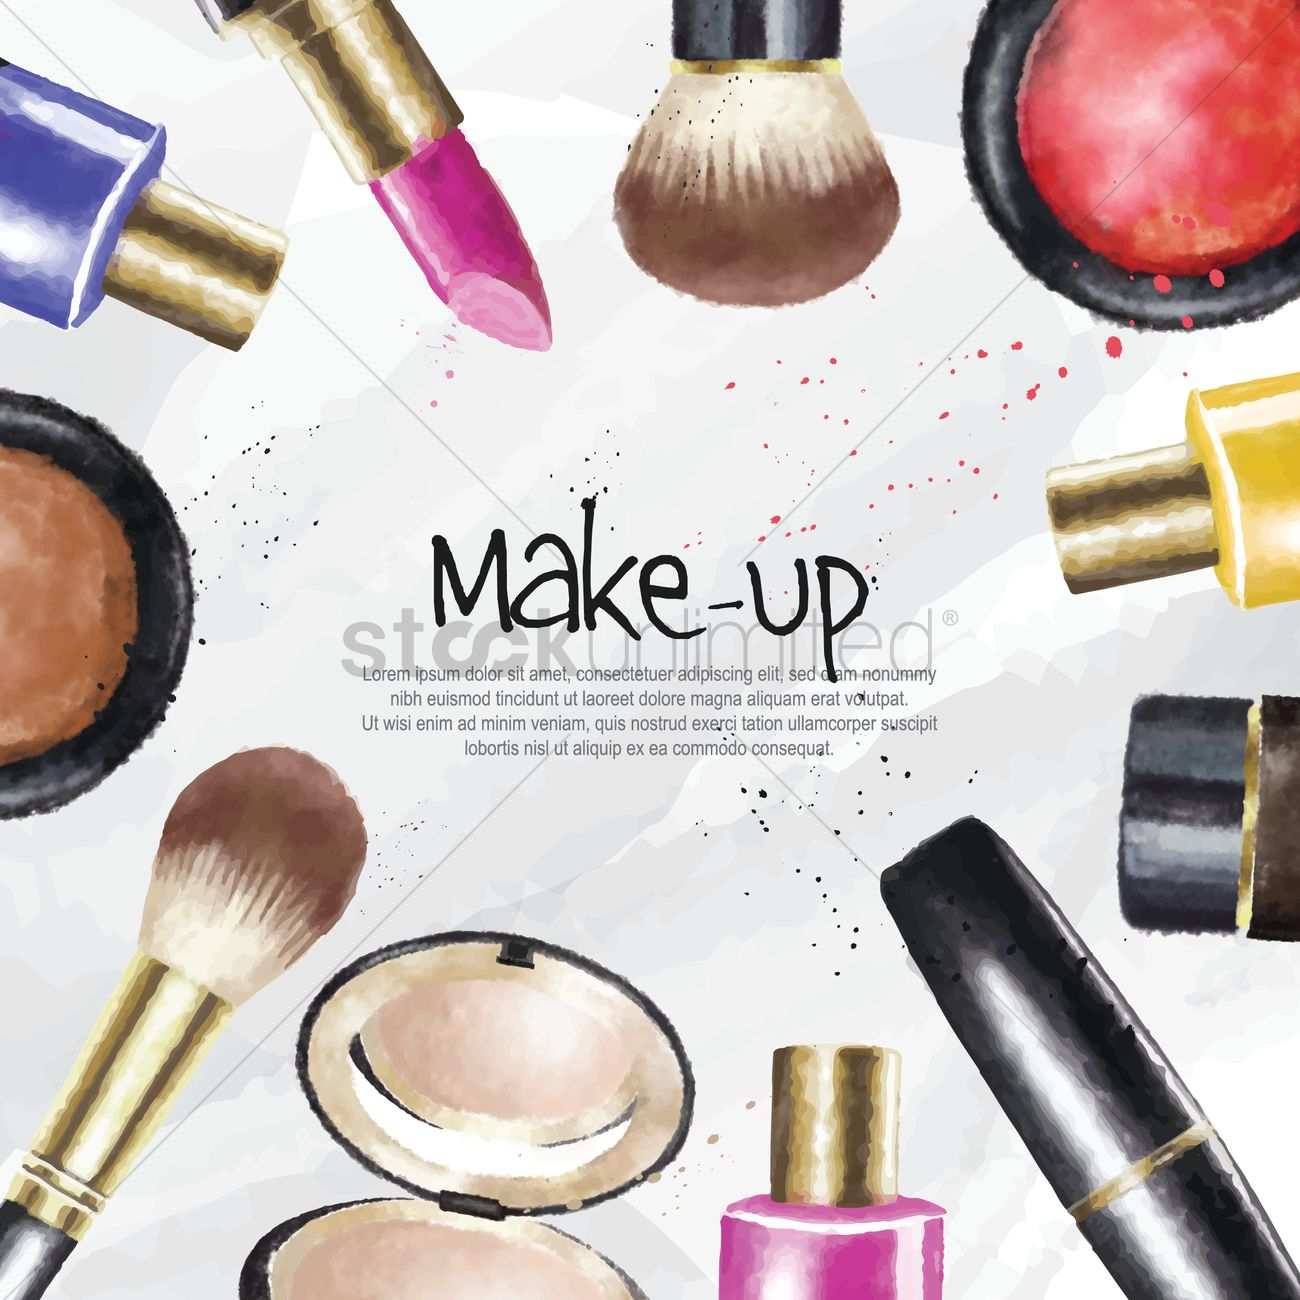 Make up cosmetics wallpaper Vector Image - 1825808